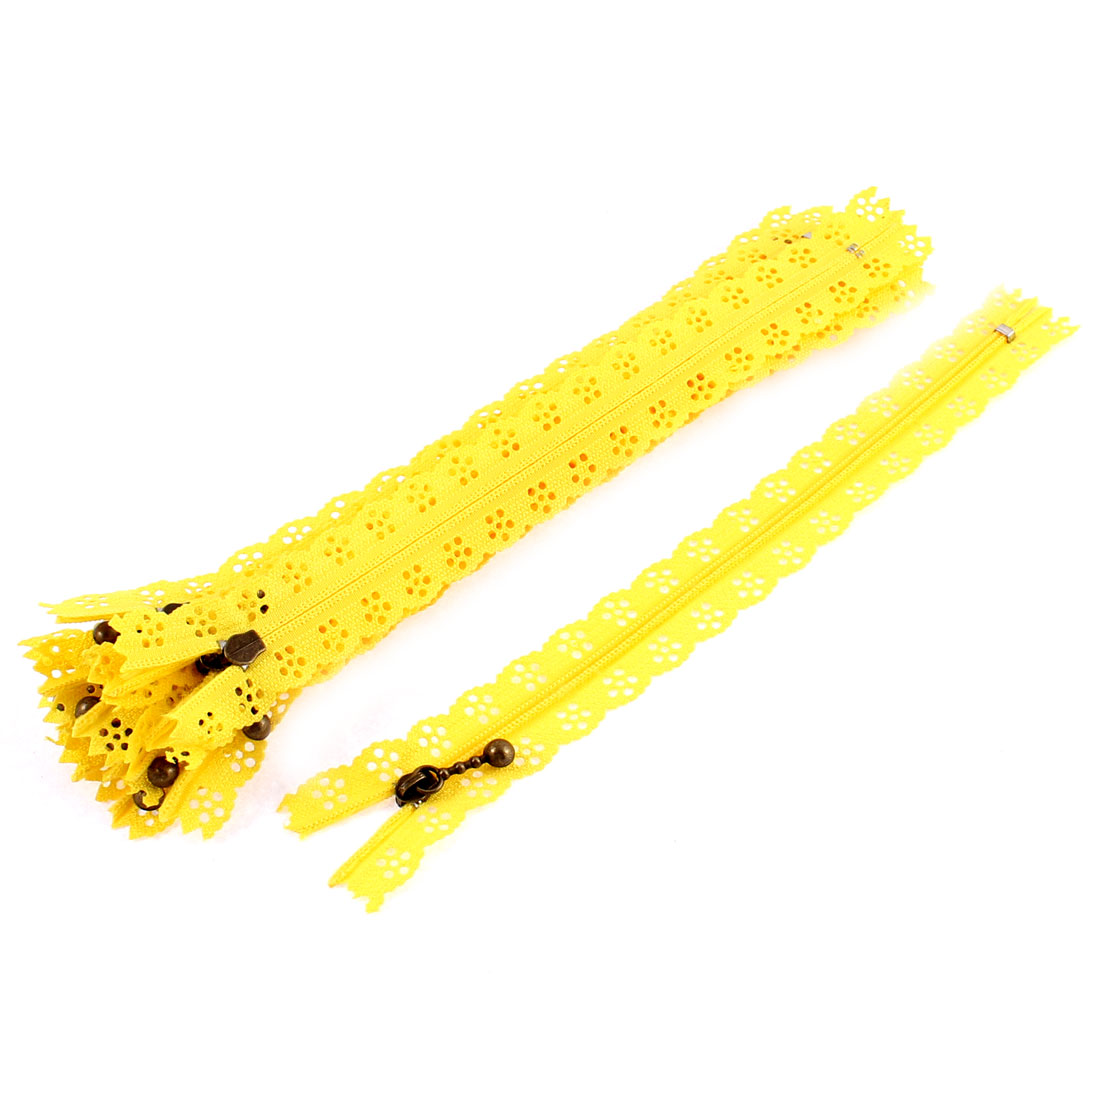 10 Pcs Yellow Nylon Lace Edged Closed End Sewing Zipper Zip